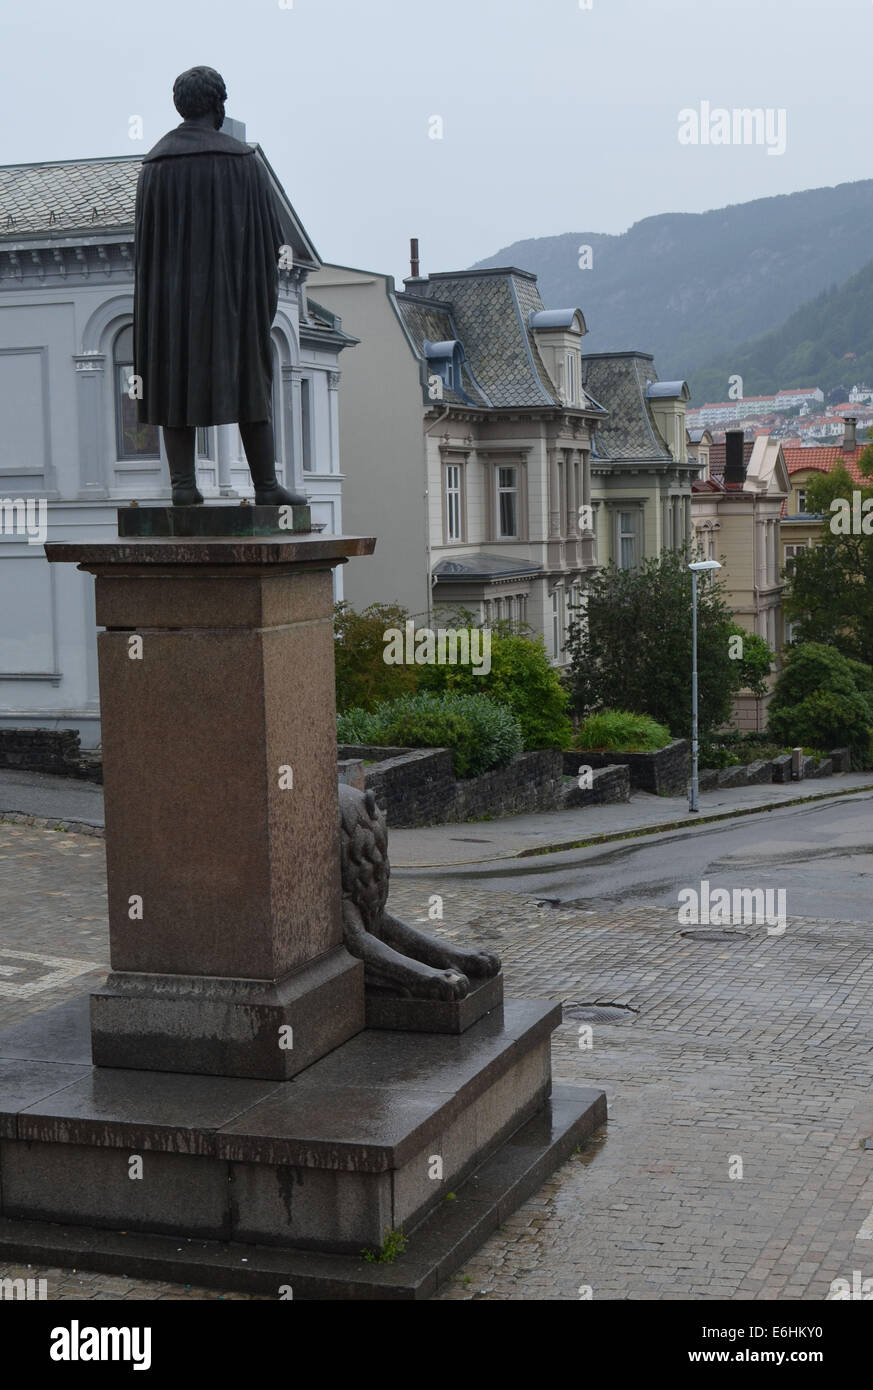 A statue (of Henrik Ibsen or Edward Grieg?) looks out from the national Theatre to a rainy day in Bergen. - Stock Image